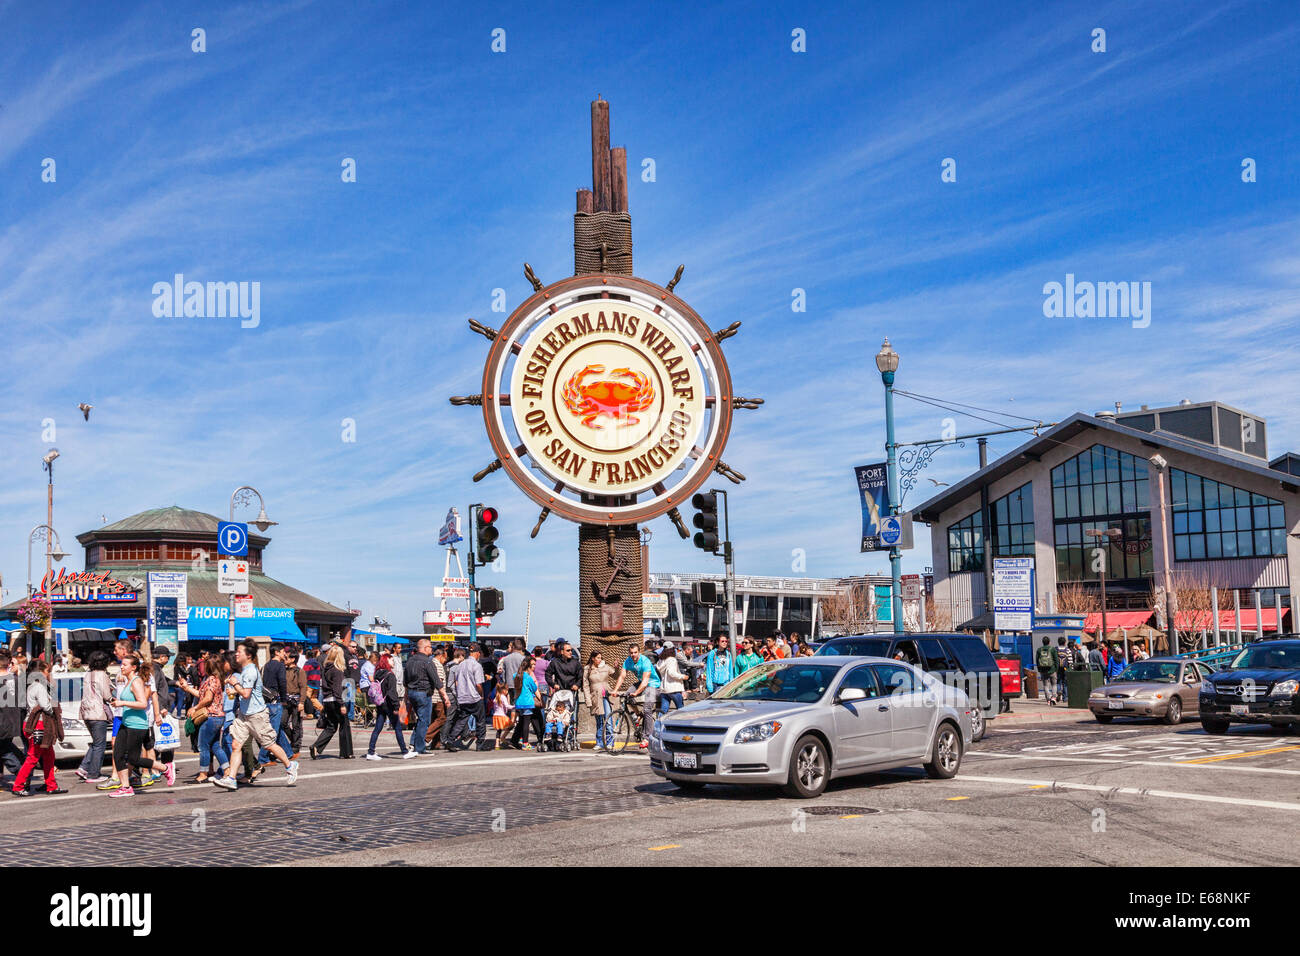 Crowds of people on a busy weekend at Fishermans Wharf, San Francisco. - Stock Image